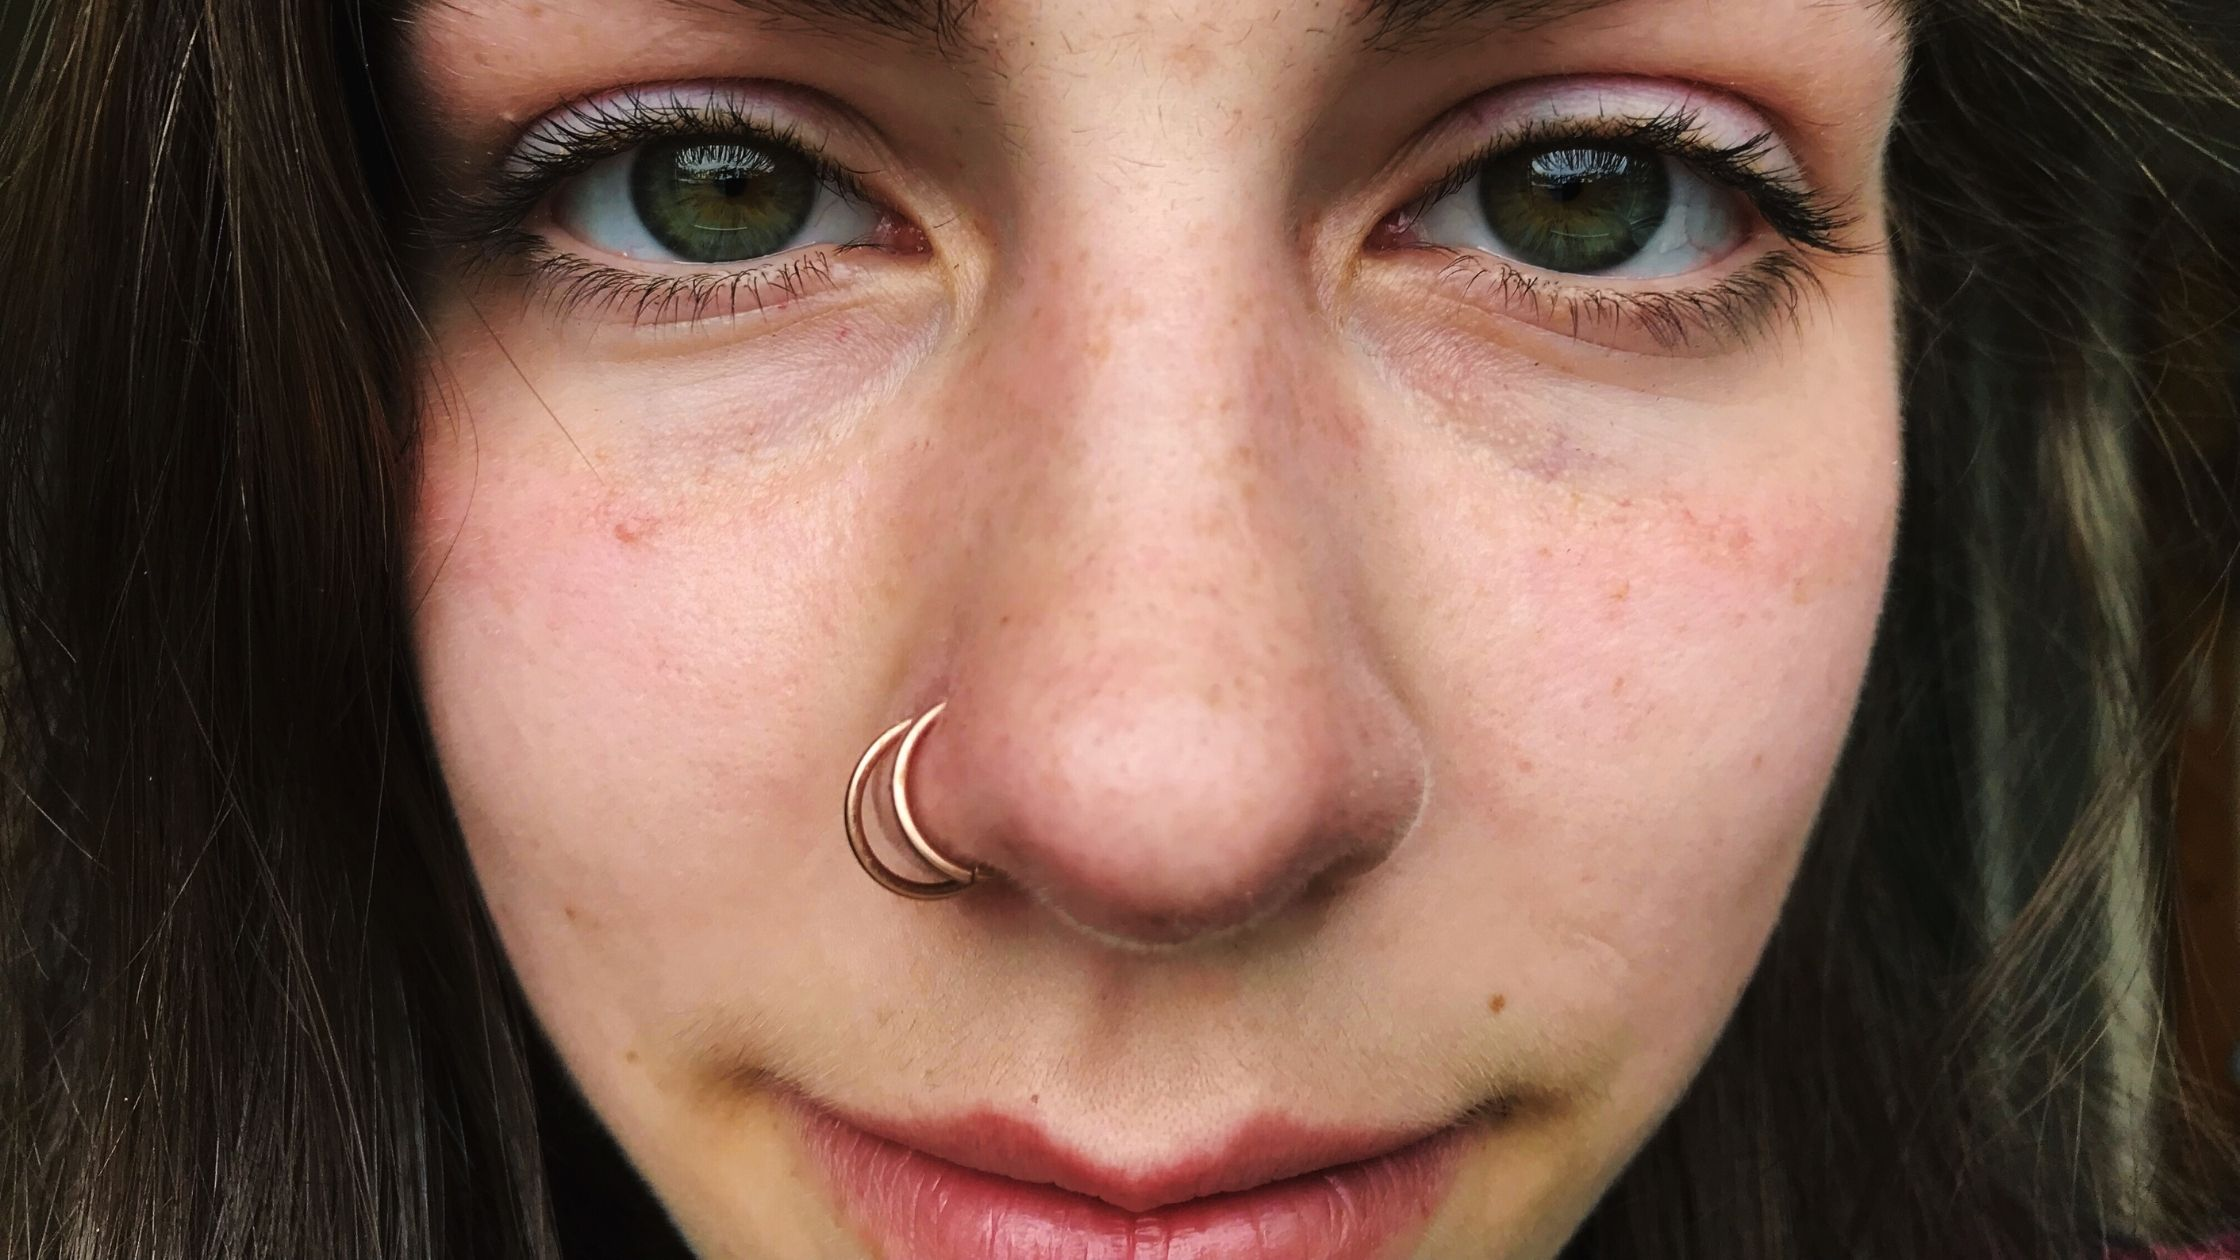 How To Find Body Piercing Shops - A Lavari Exclusive